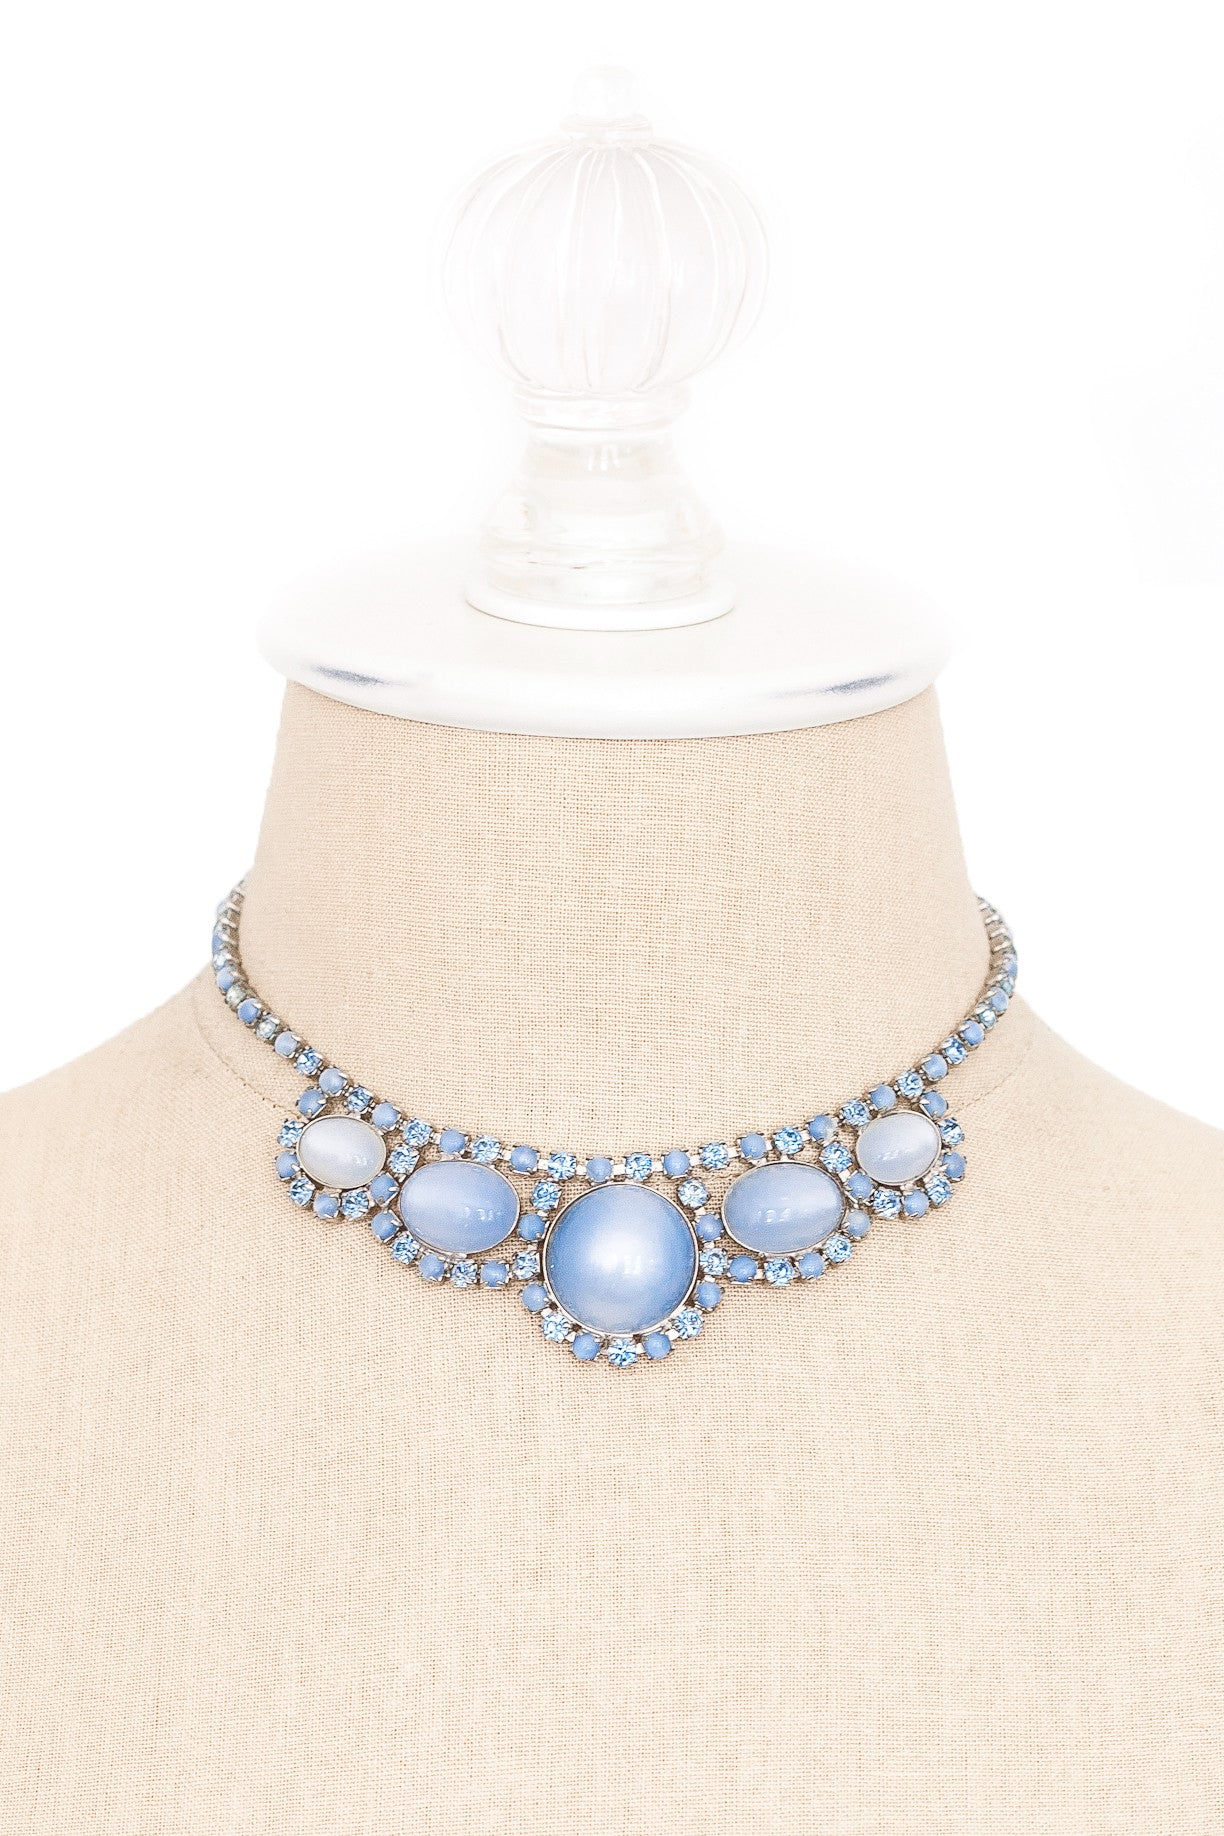 50's__Vintage__Blue Bauble Rhinestone Necklace